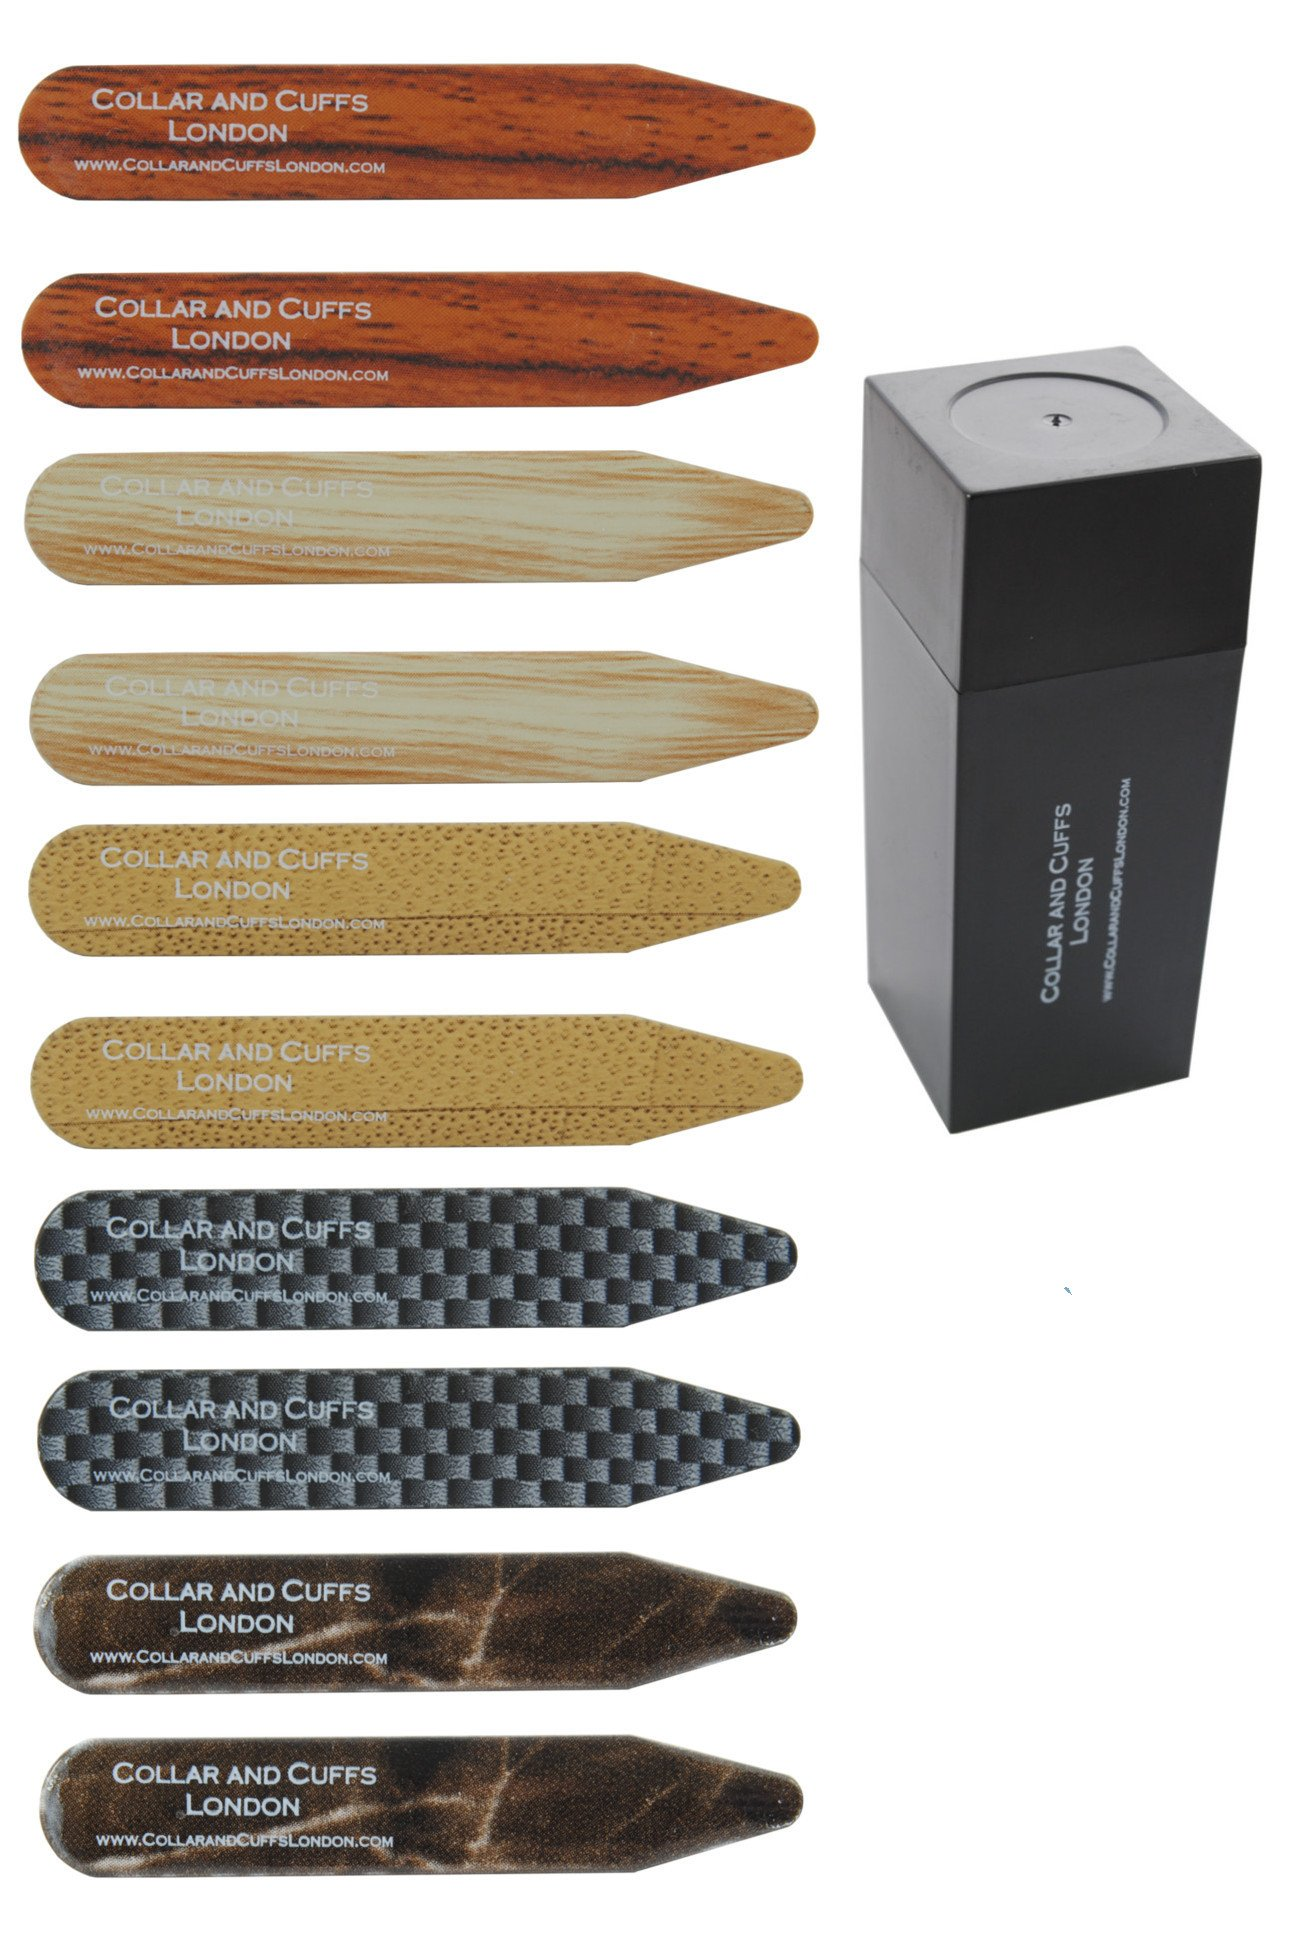 COLLAR AND CUFFS LONDON - 10 Shirt Collar Stiffeners - RARE DESIGNS - 2.35'' - Silver Brown and Black Colours - With Plastic Storage Box - 5 pairs